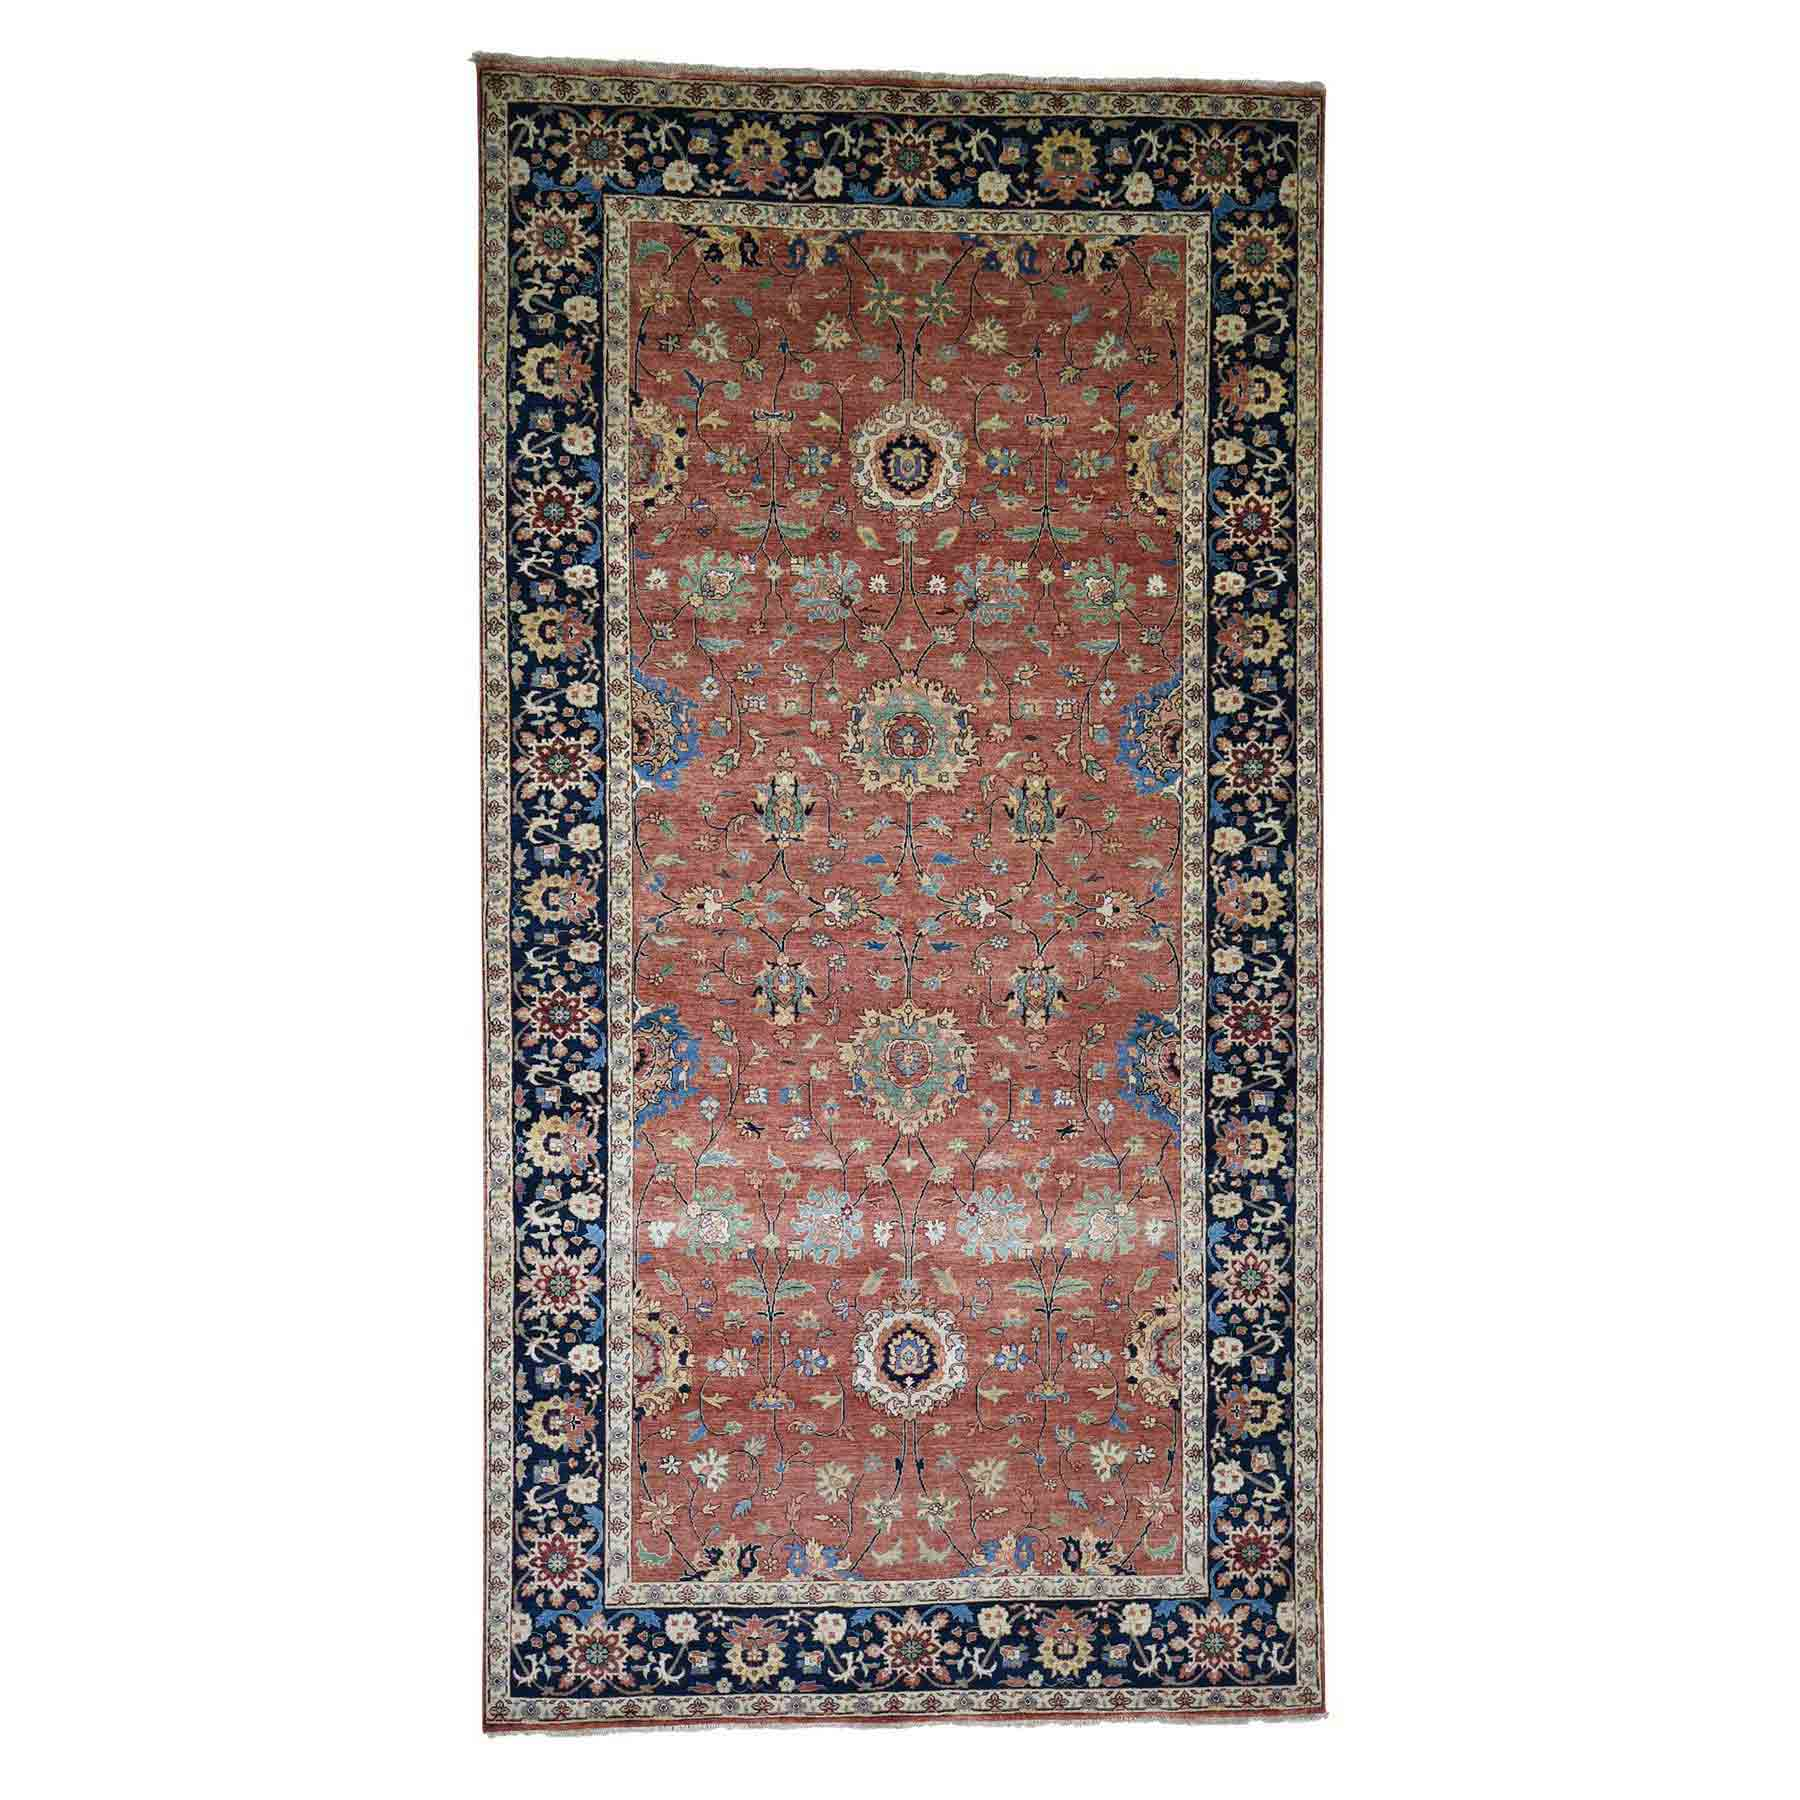 Heriz-Hand-Knotted-Rug-208565